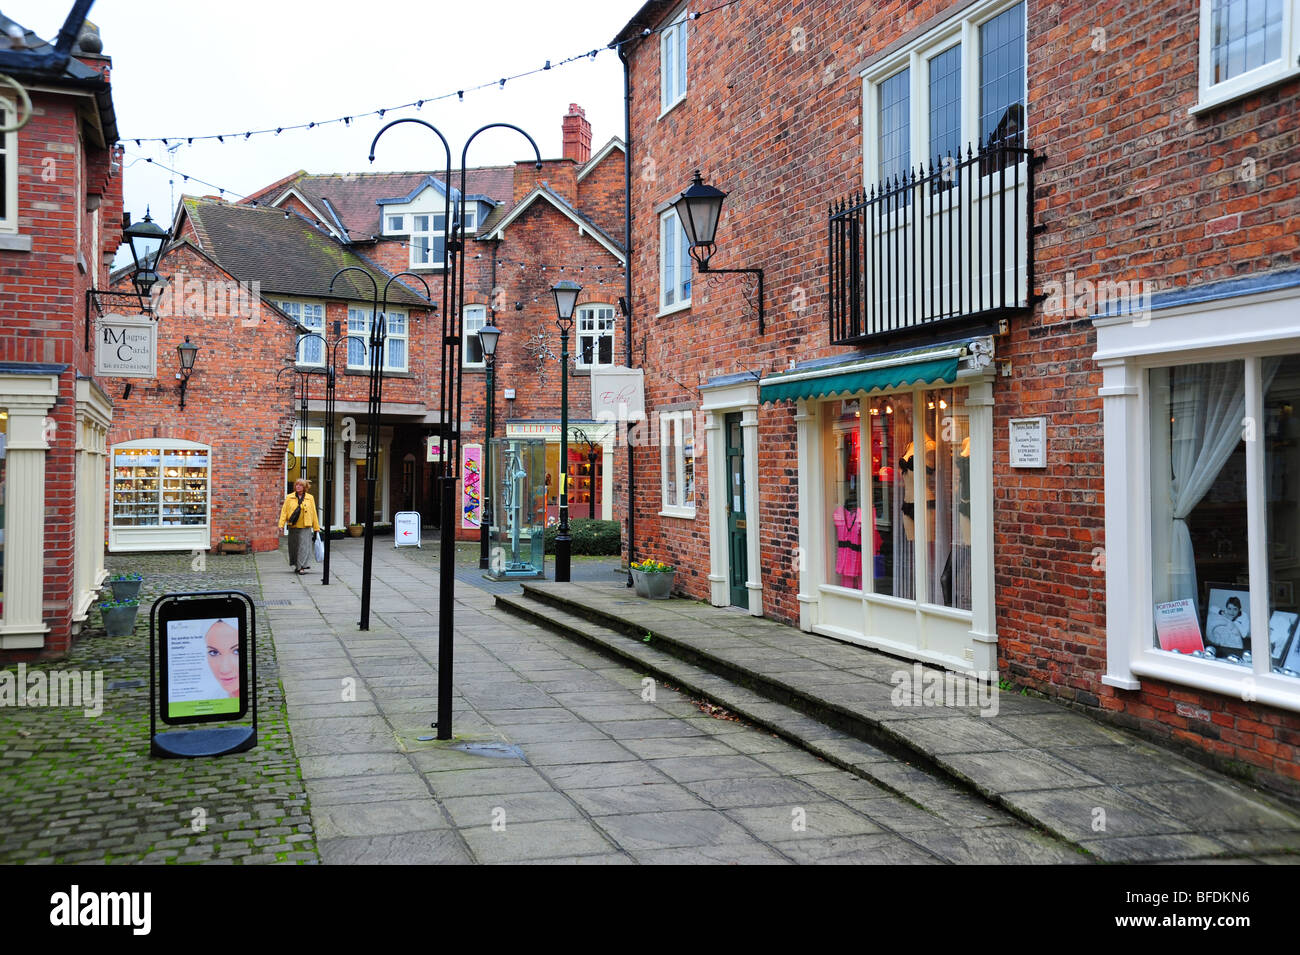 Shopping area in Nantwich Cheshire - Stock Image